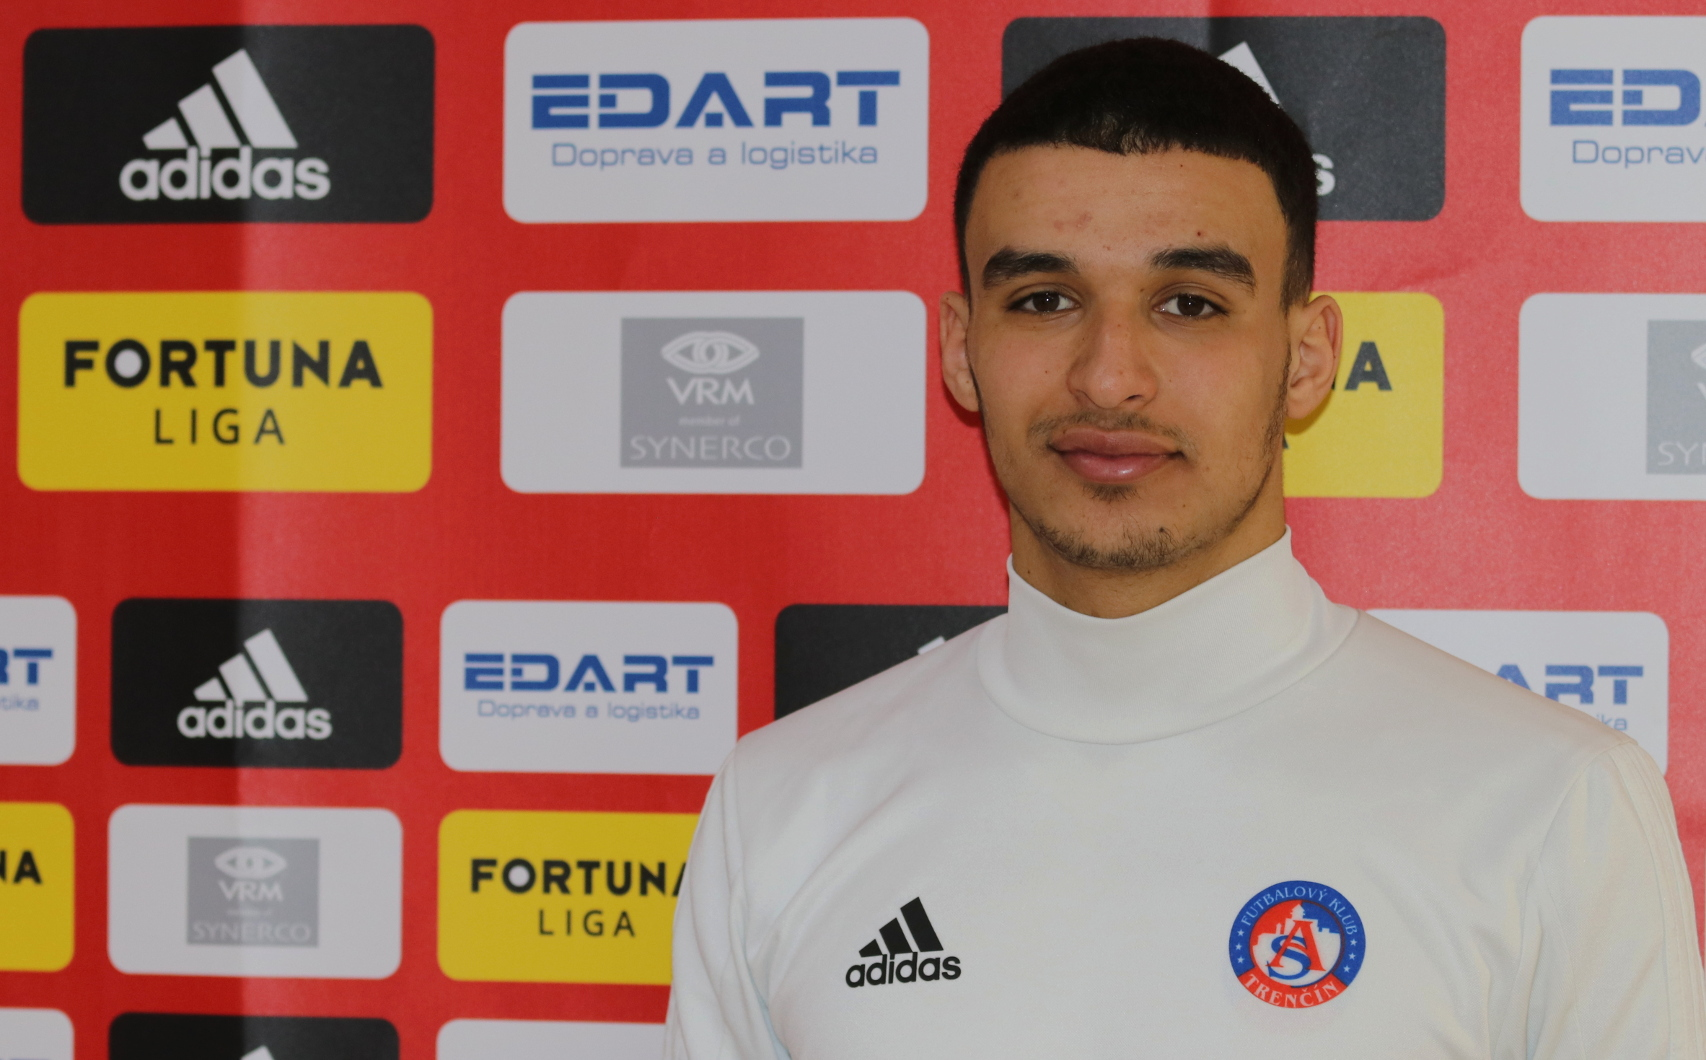 imran-oulad-omar-to-trencin